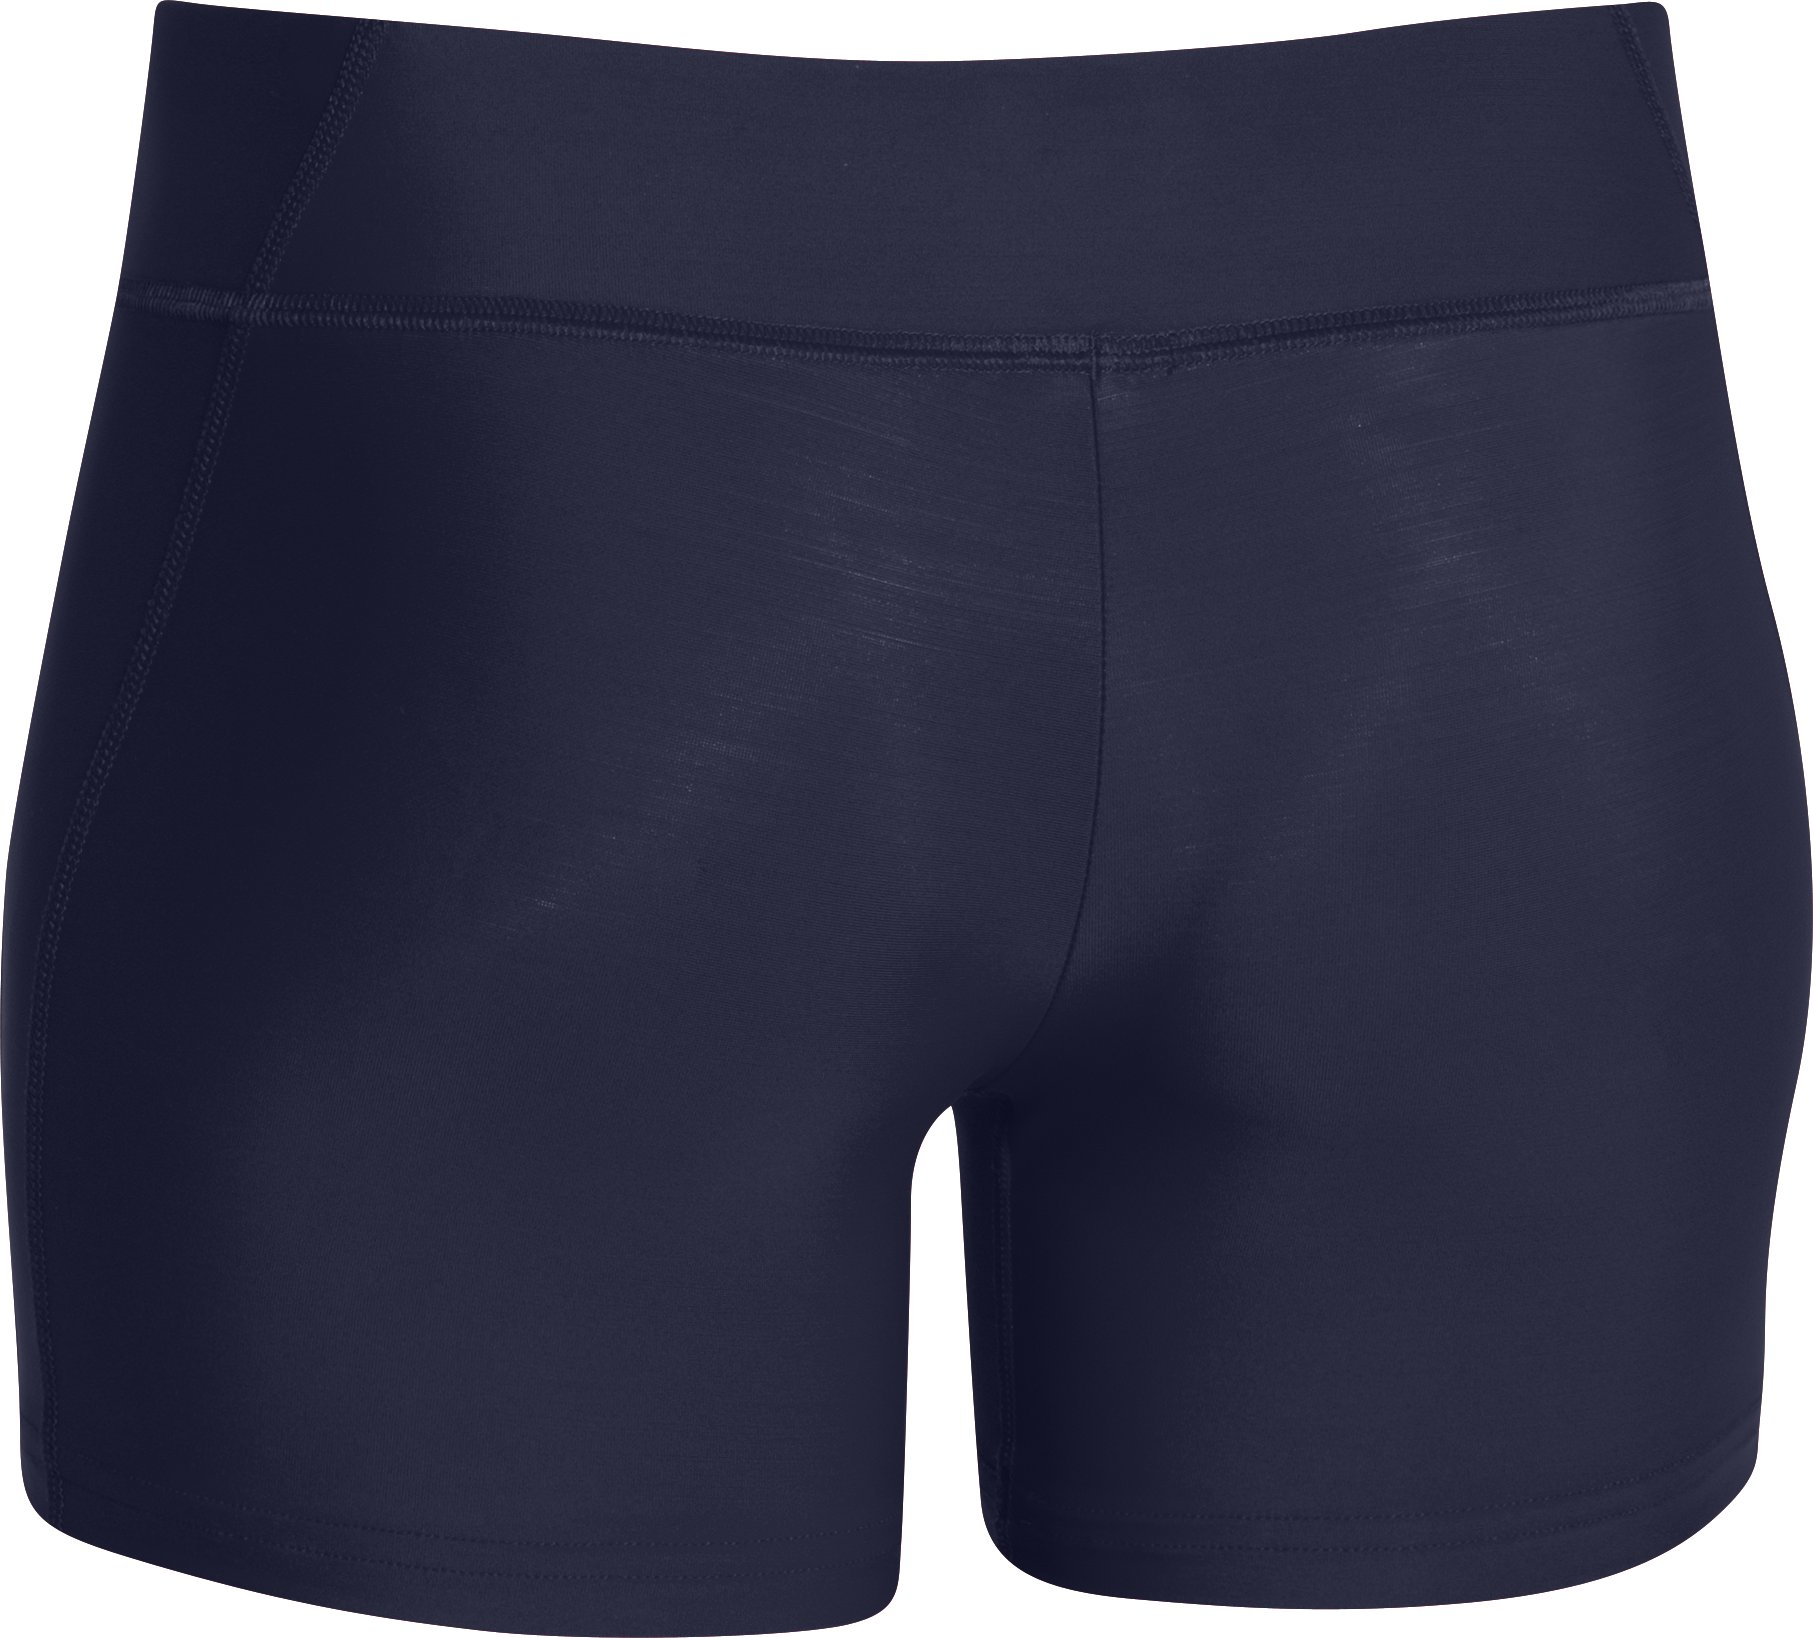 "Women's UA React 4"" Volleyball Shorts, Midnight Navy"